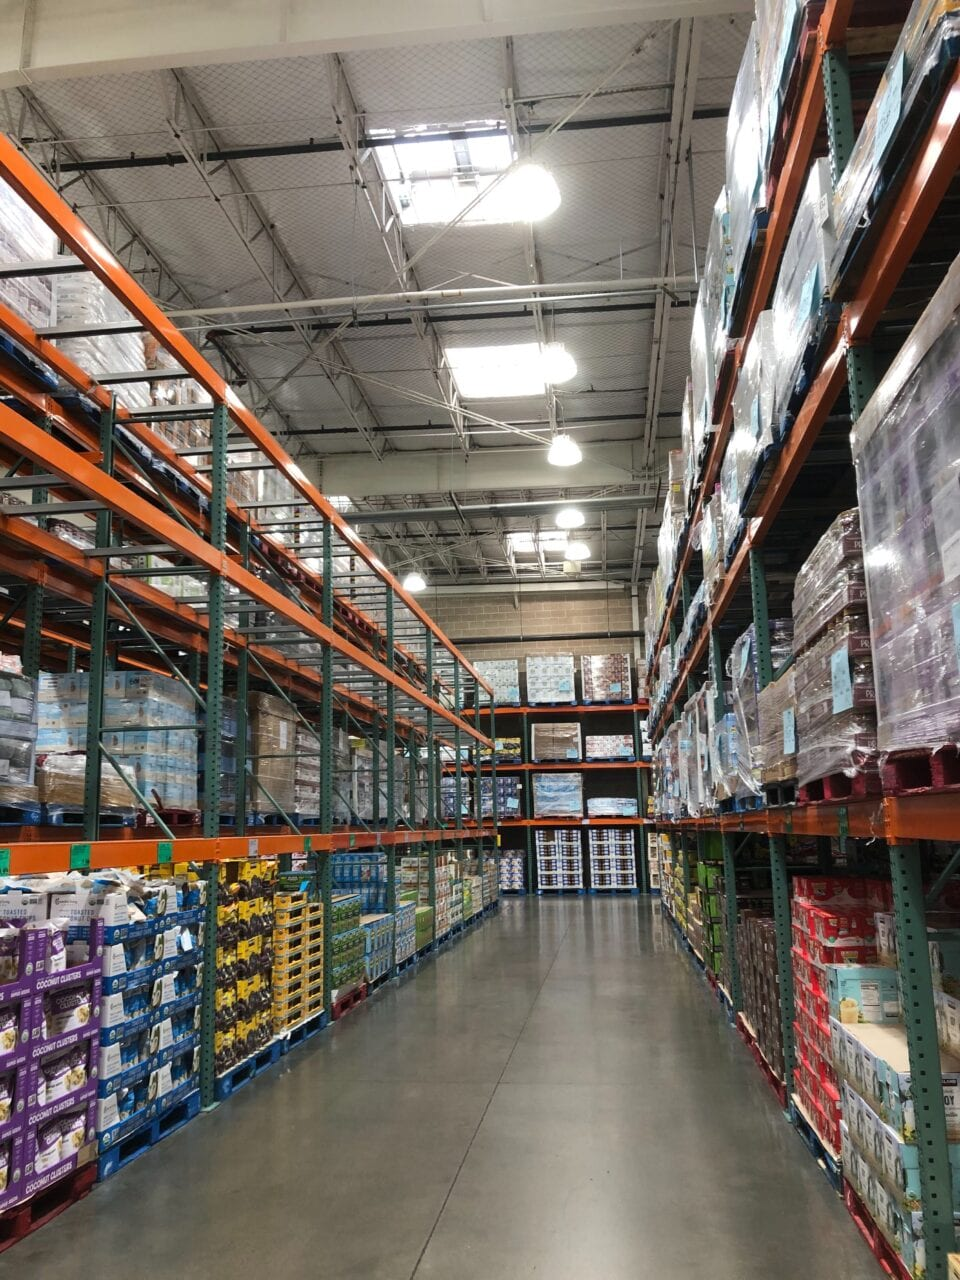 View of an aisle of products in a Costco store.